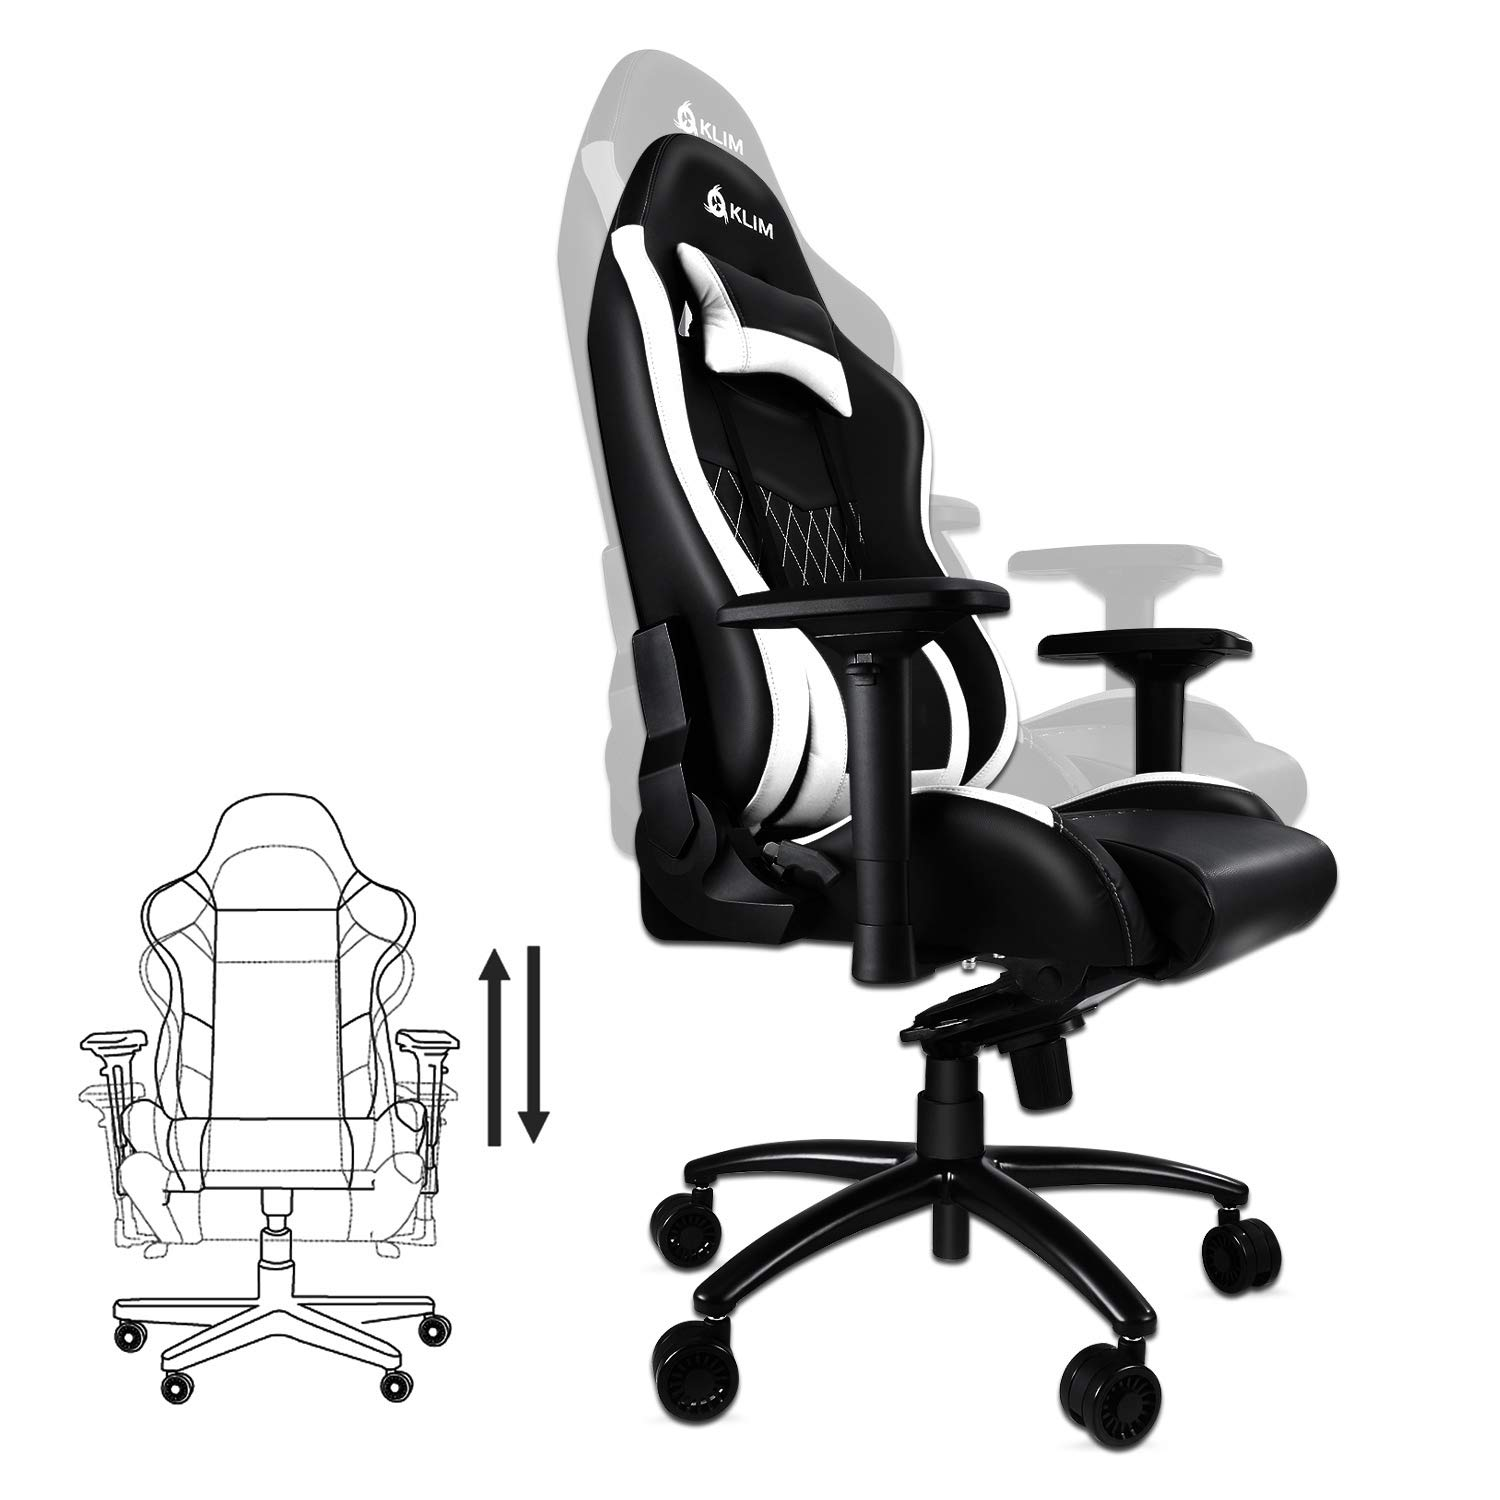 Amazon.com: Klim Esports Gaming Chair Executive Ergonomic Racing Computer Chair - Back & Head Support - New - Adjustable Armrest - Desk & Office Recliner ...